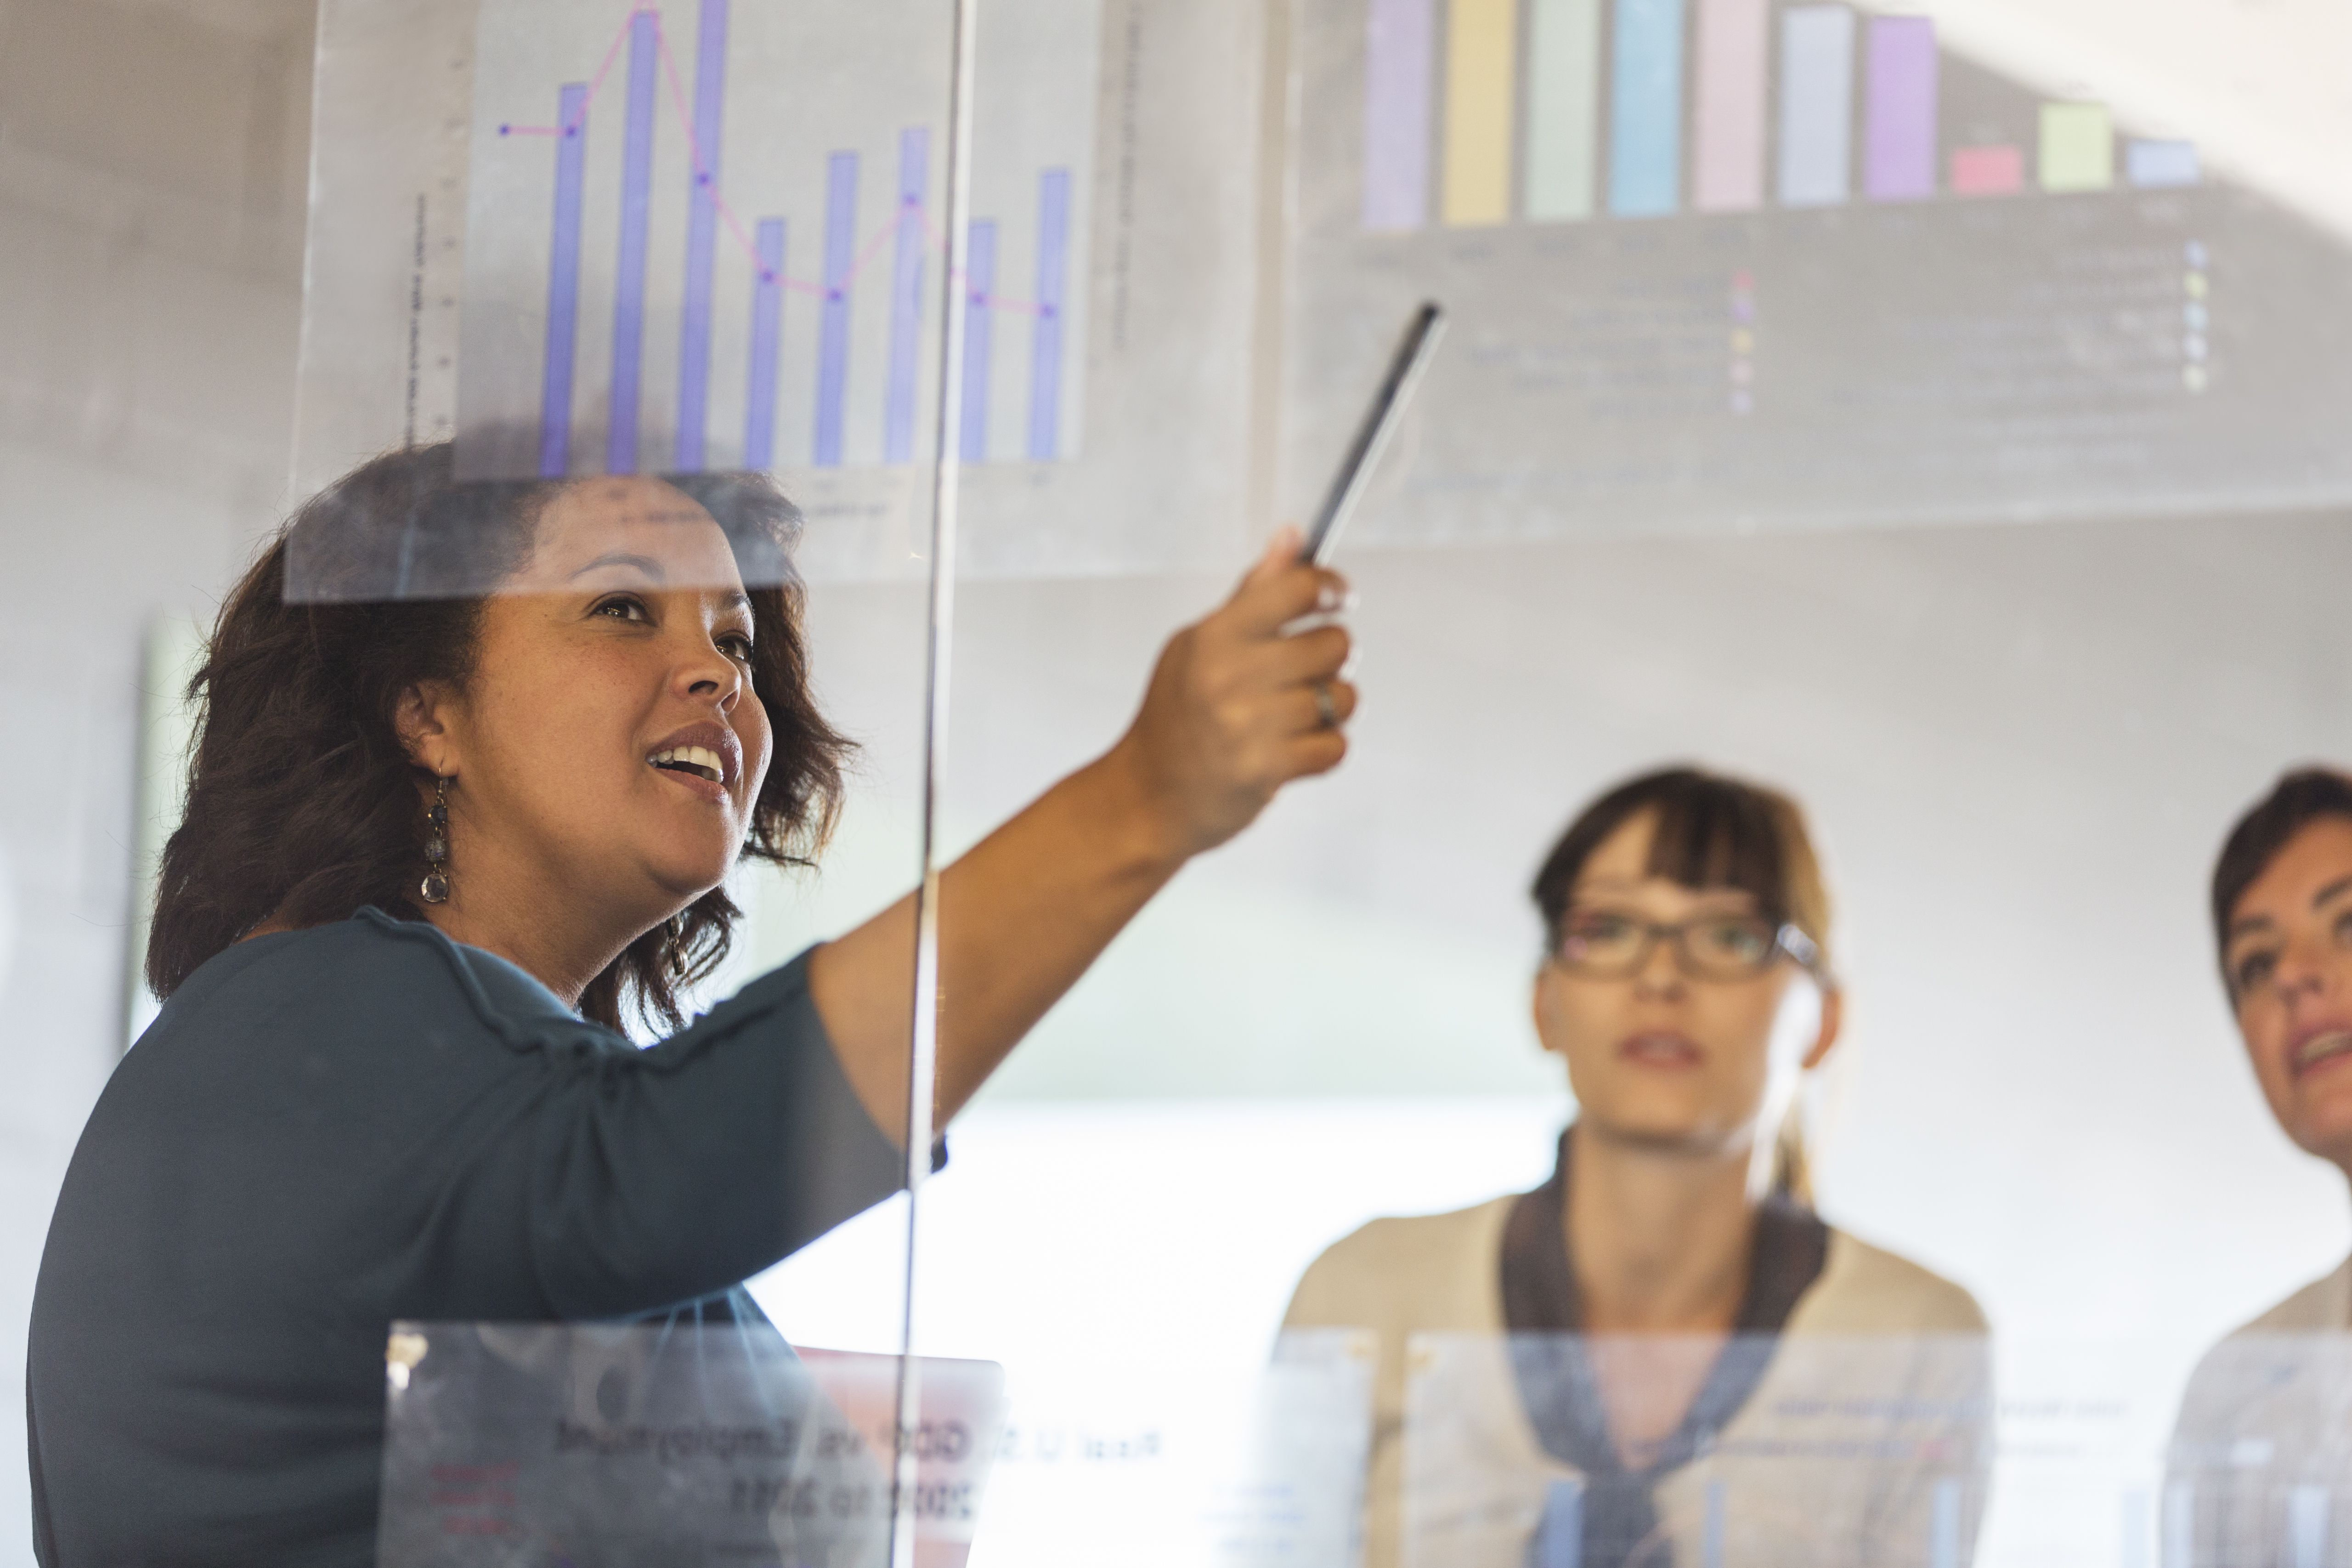 Banks Use Predictive Analytics for Service, Marketing, Security